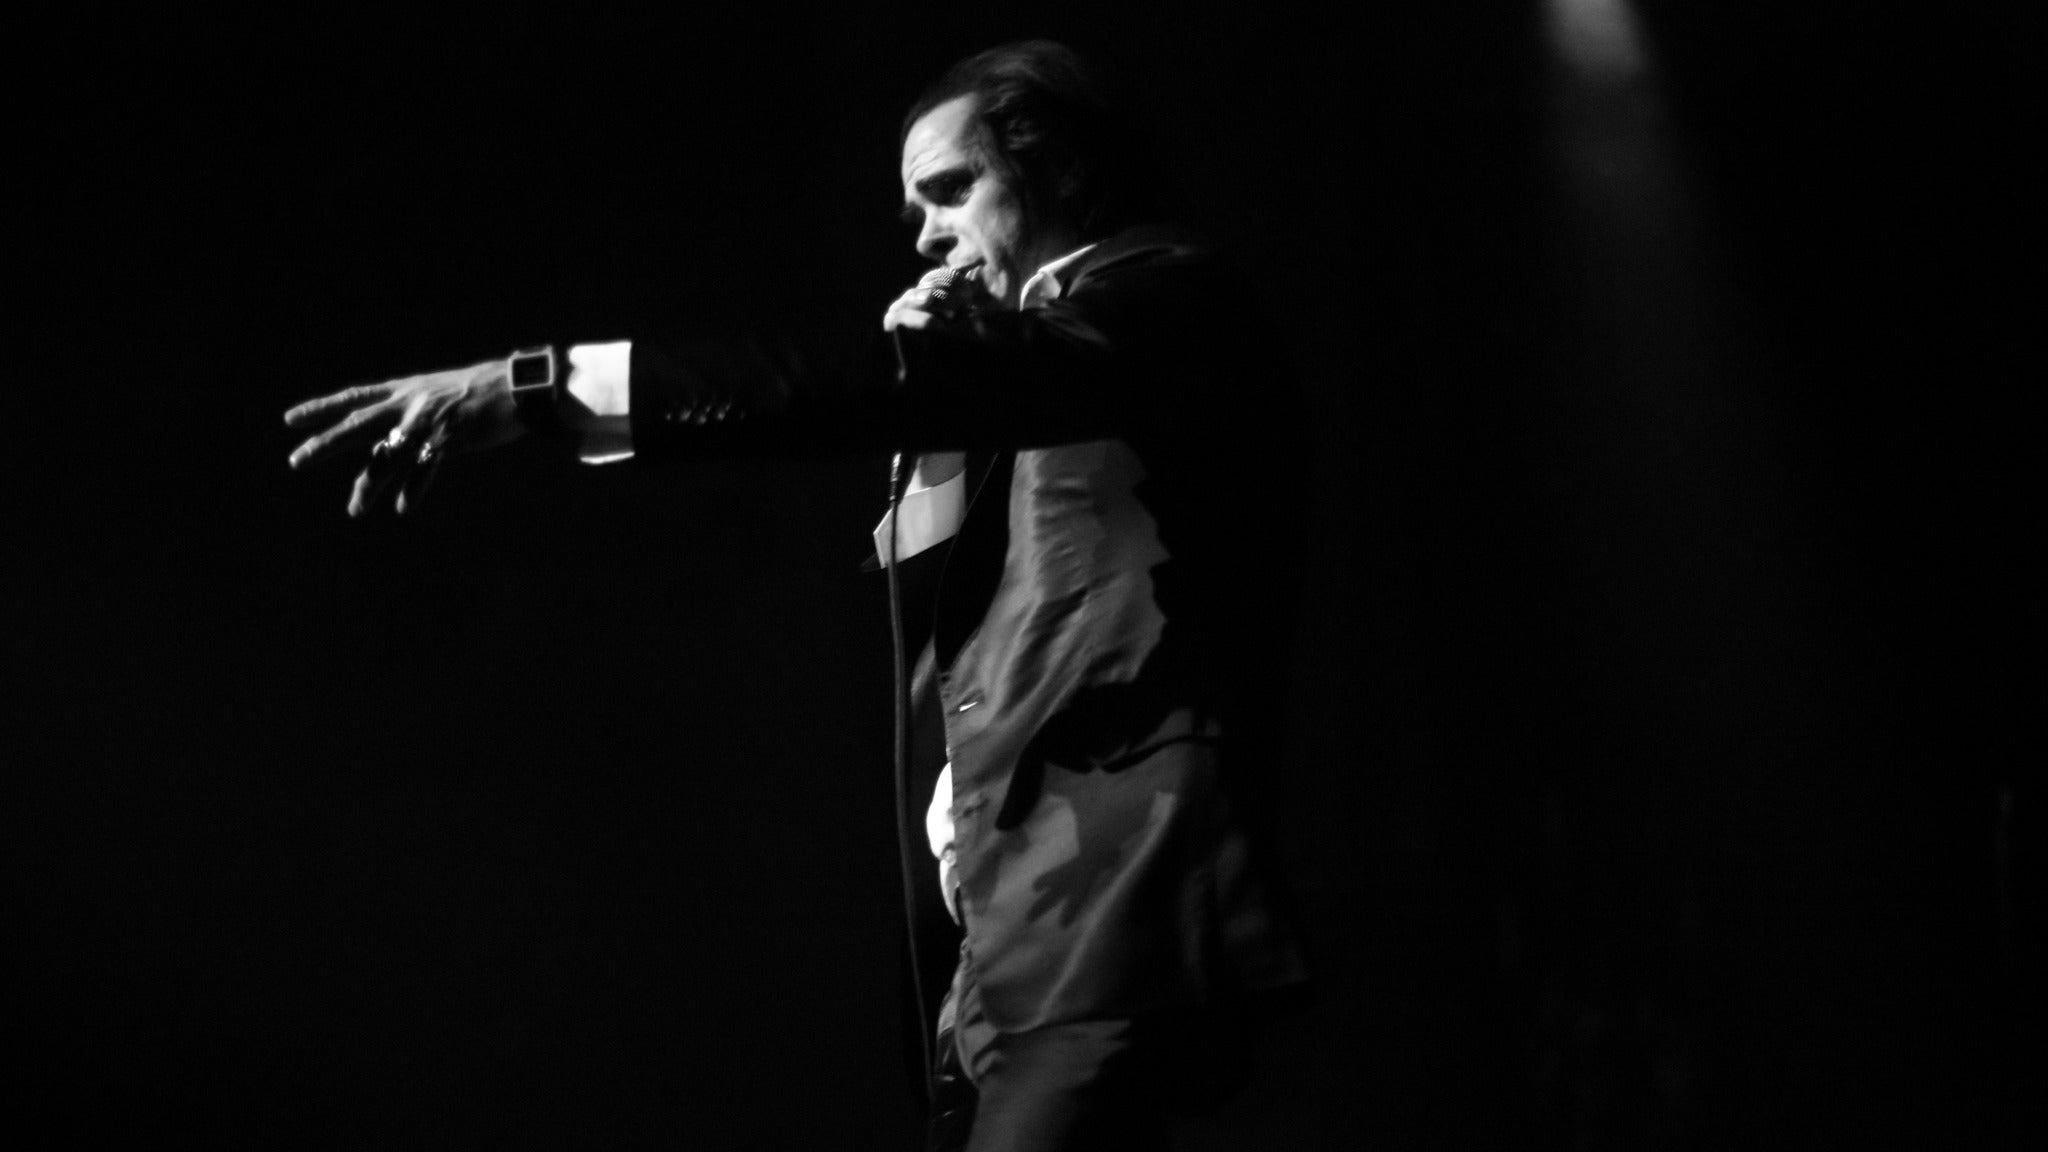 Nick Cave & The Bad Seeds at San Diego Civic Theatre